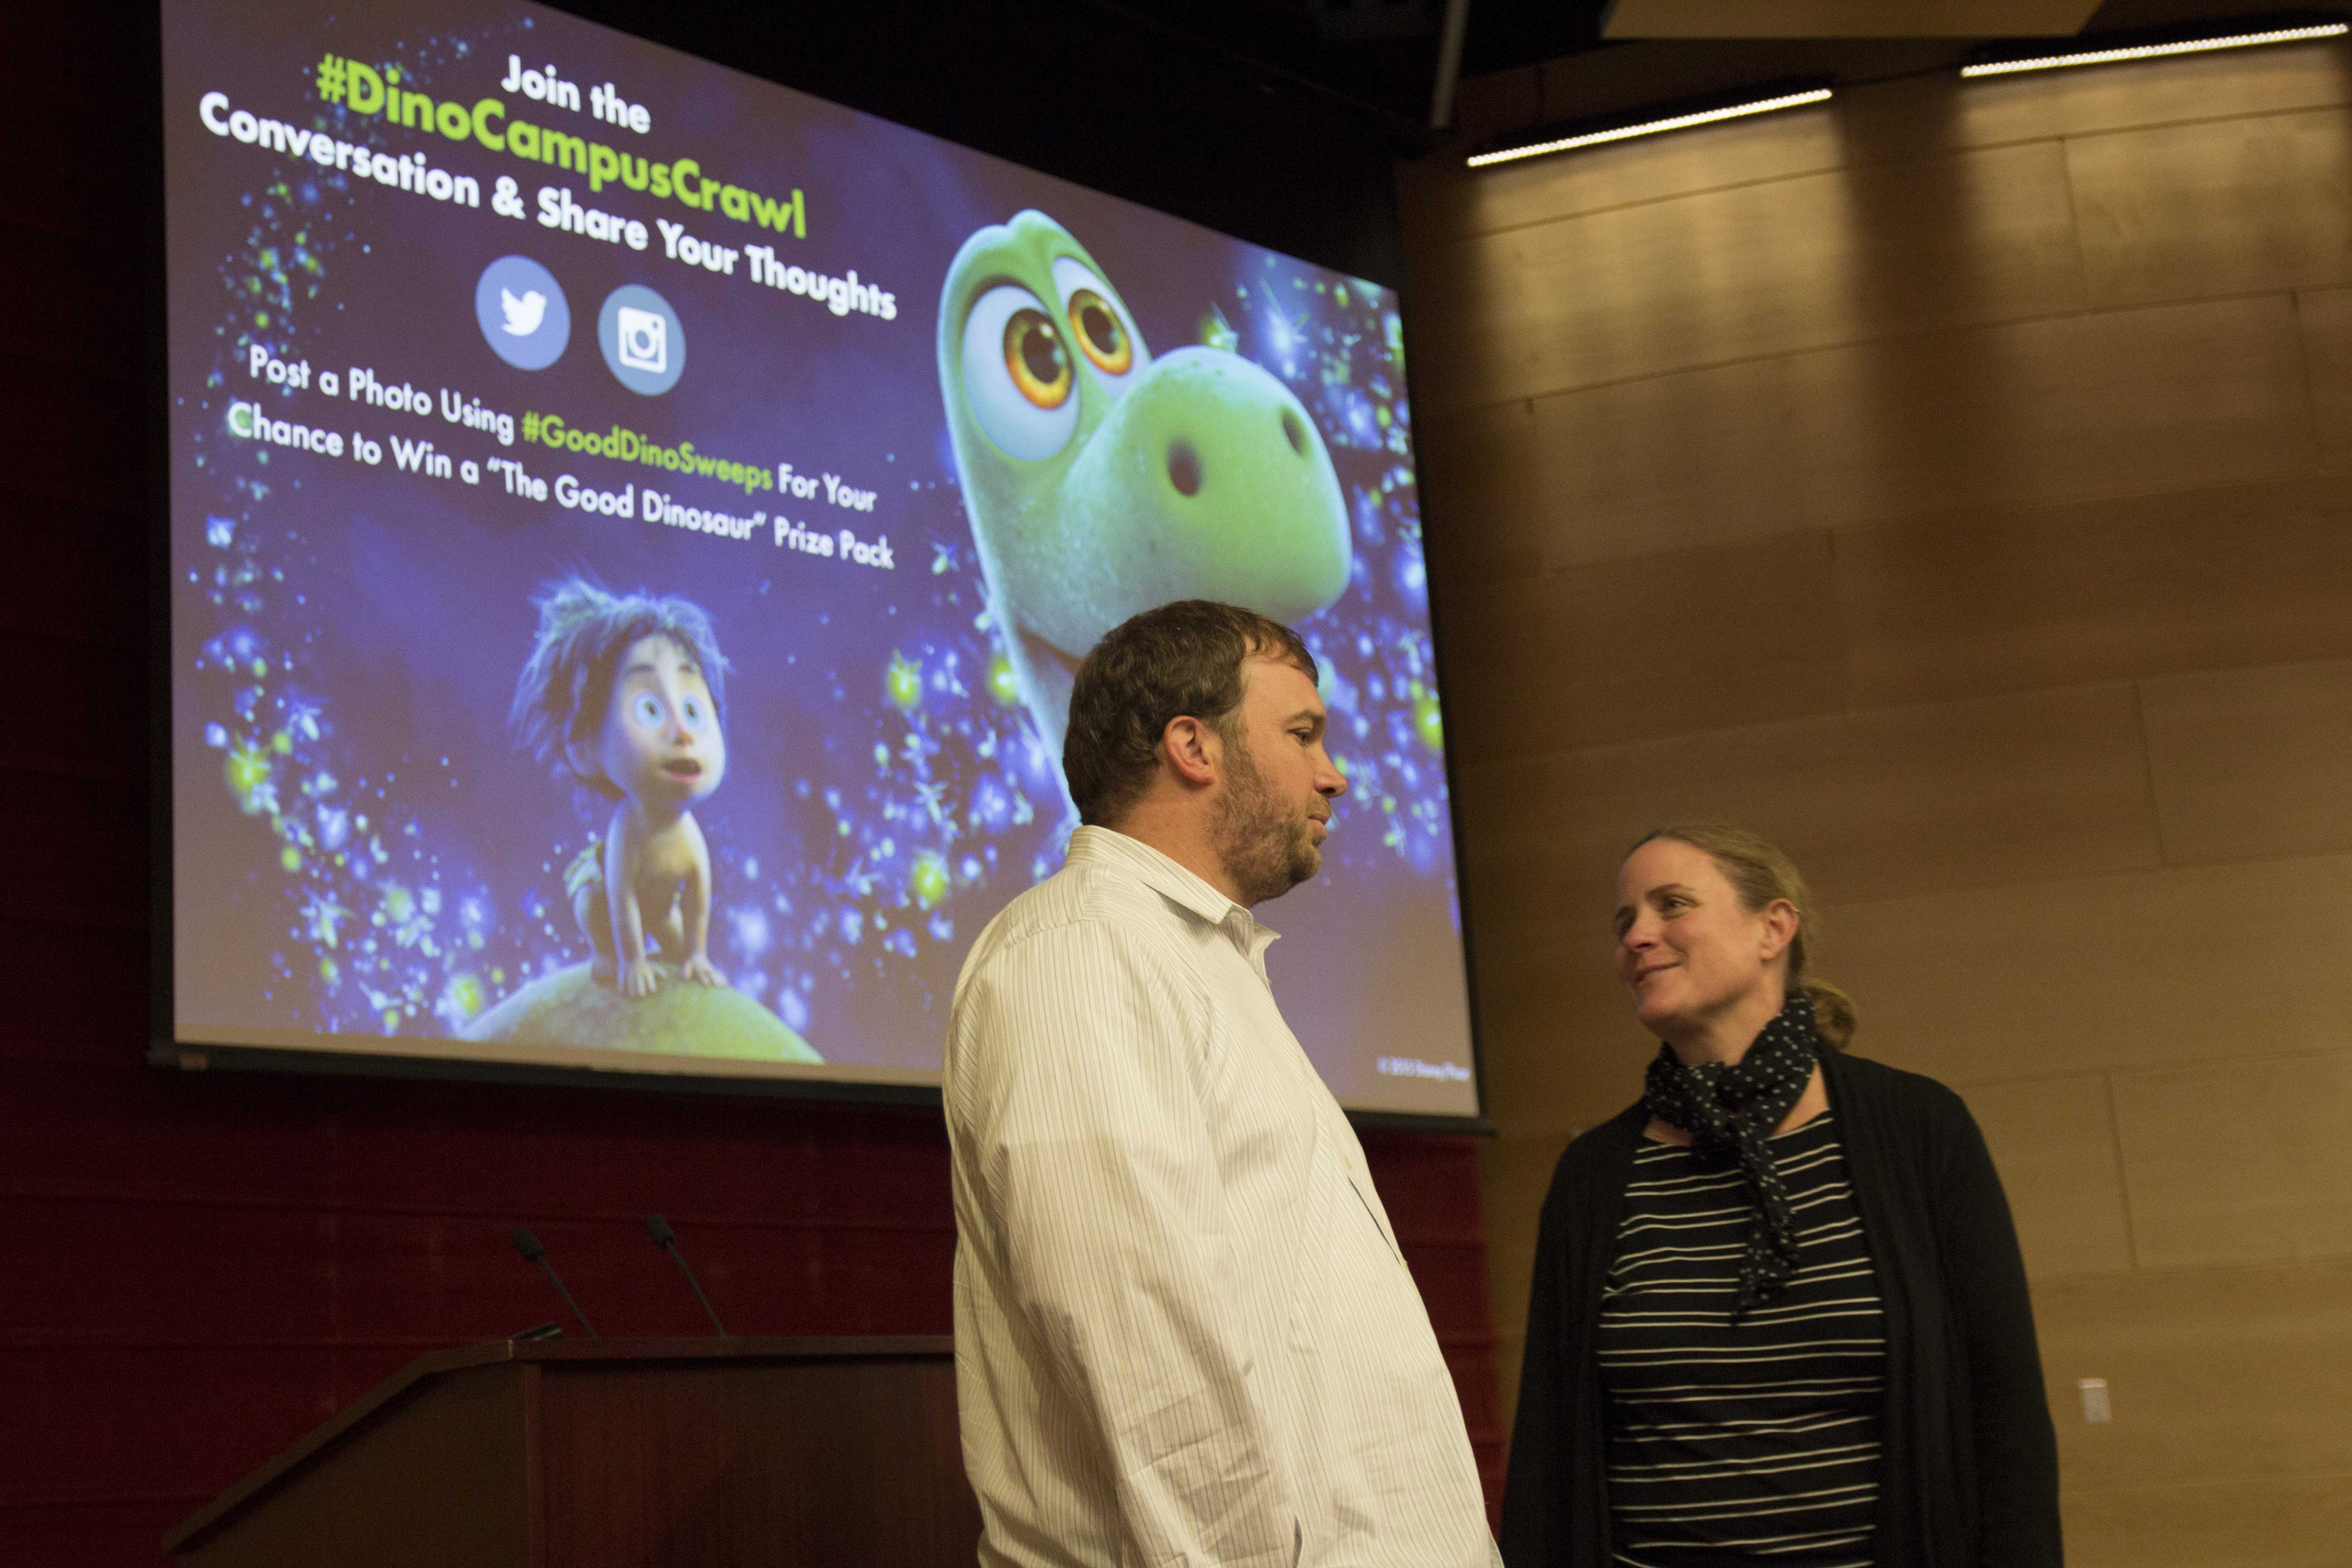 Michael O'Brien, Disney Pixar artist, and Daniela Marx, design professor, talk before the Behind the Scenes Animation Presentation in Nunemaker Auditorium on Mon. Nov. 9, 2015.